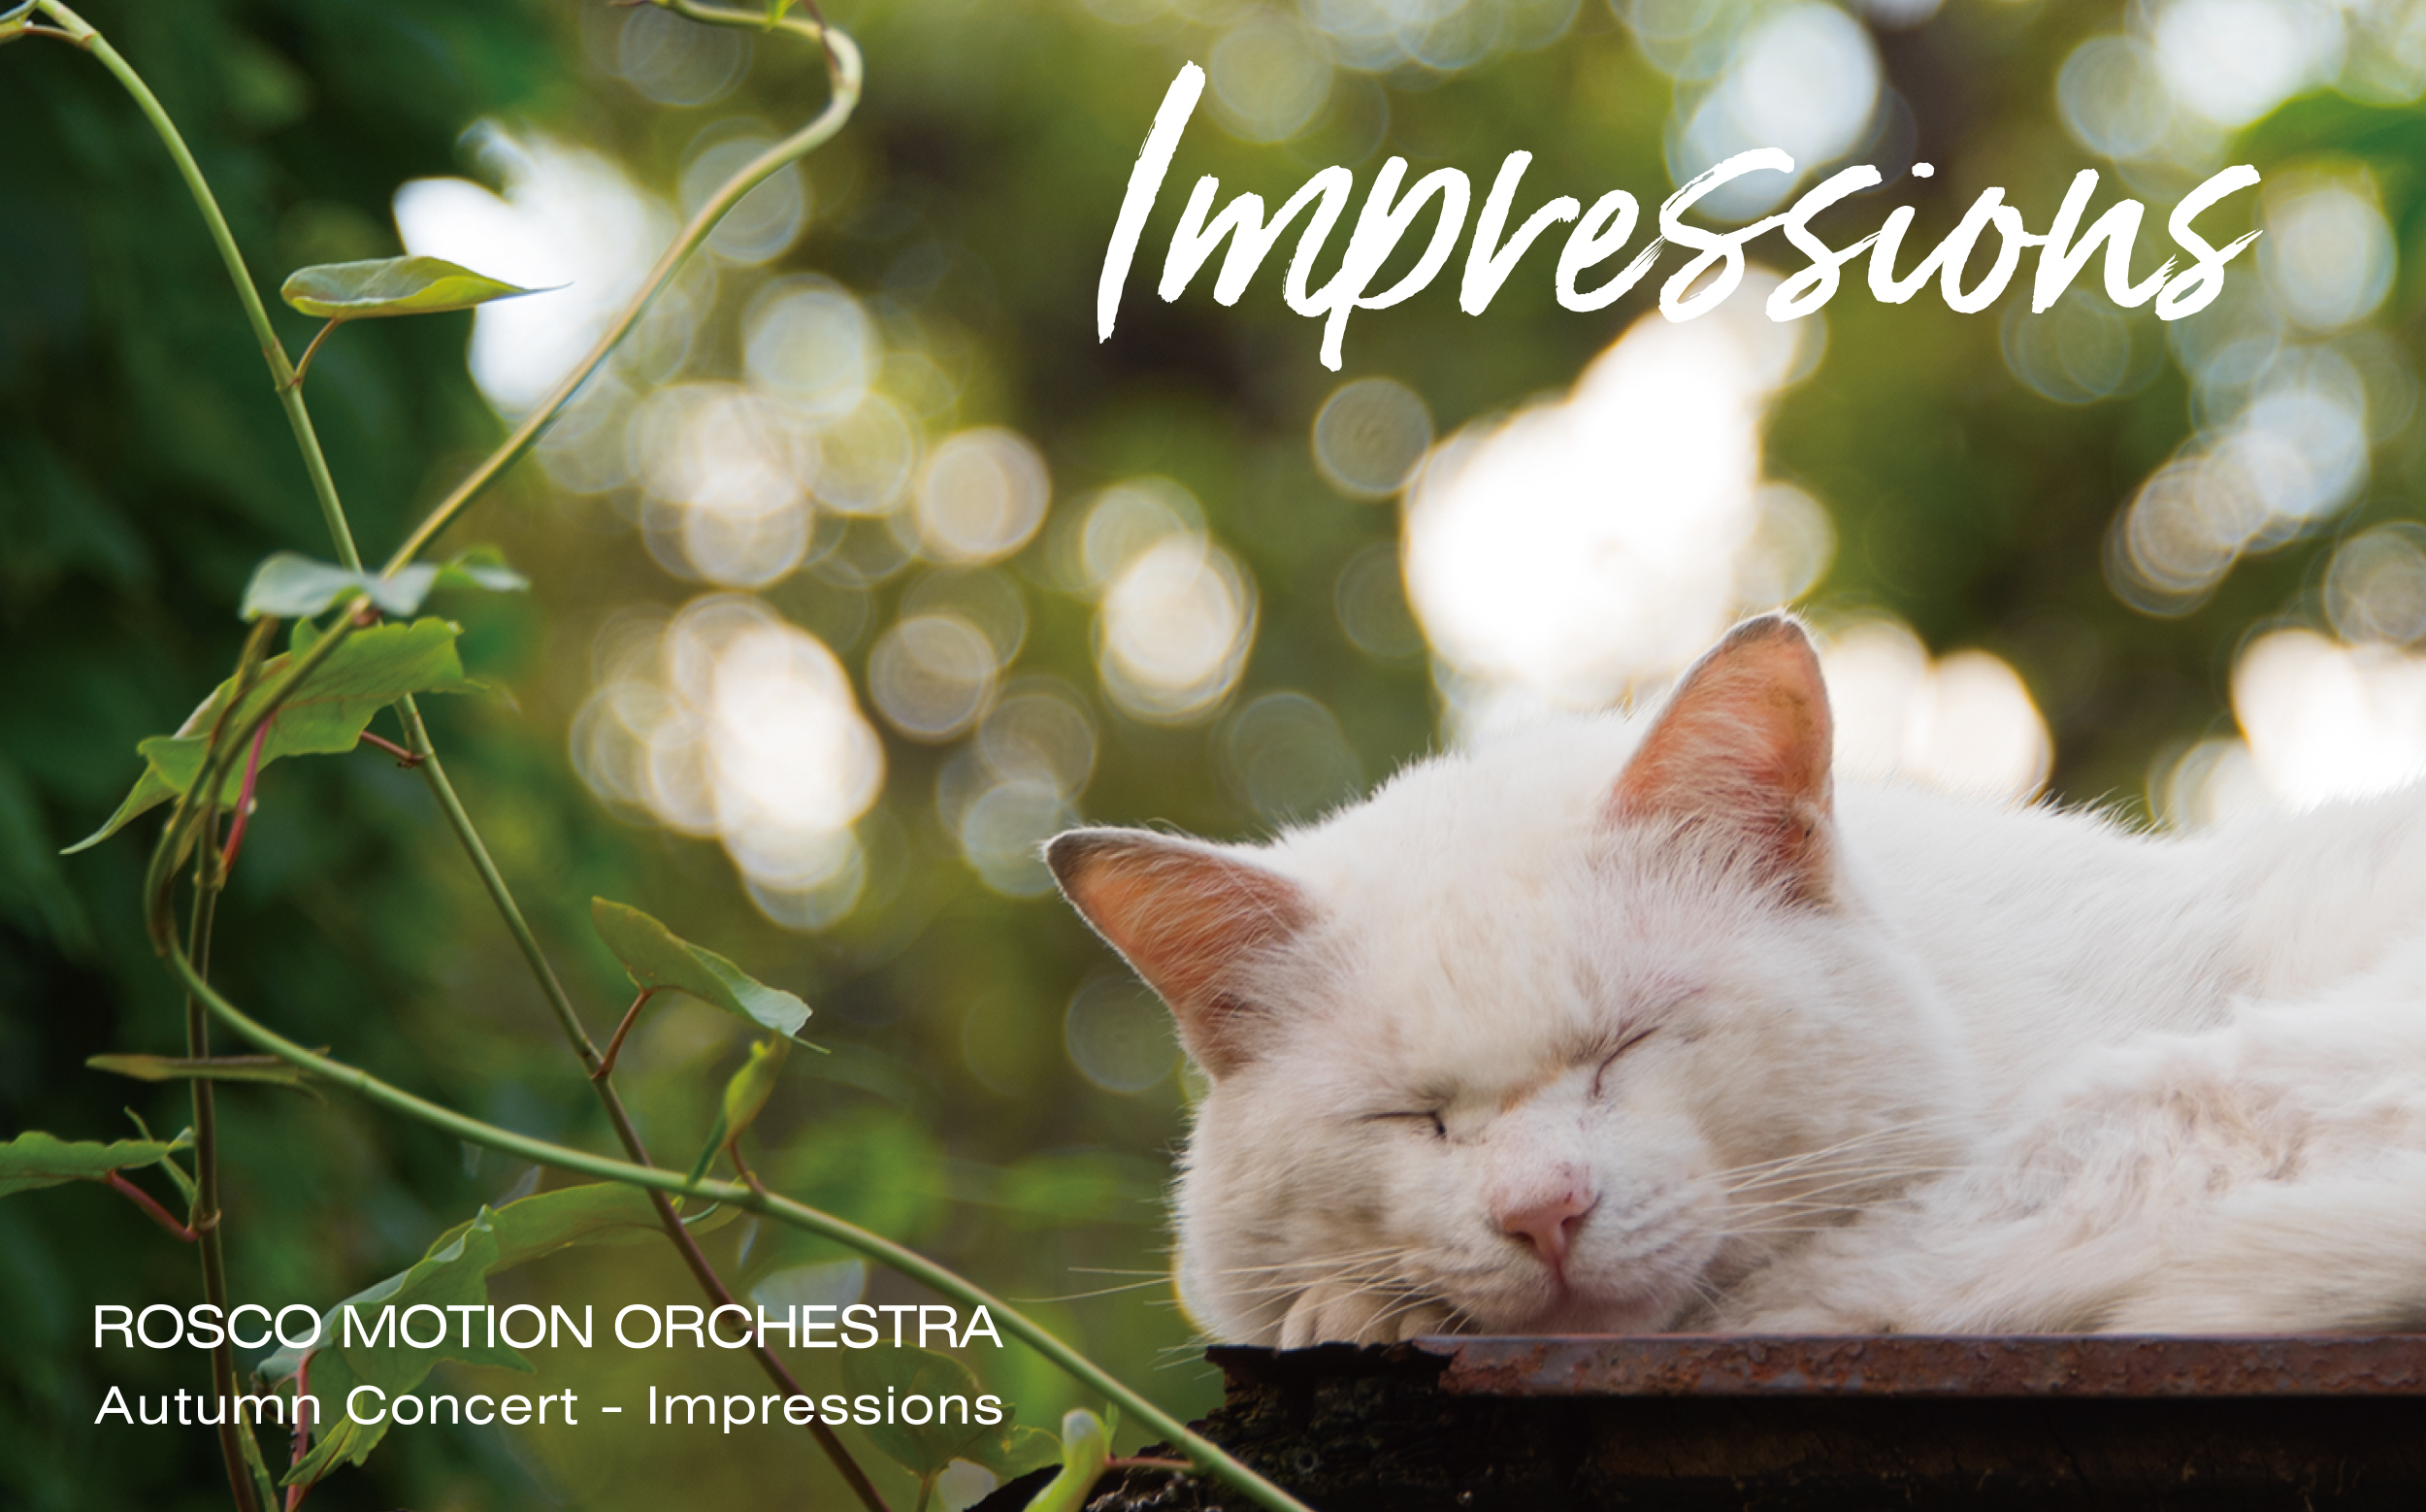 ROSCO MOTION ORCHESTRA Autumn Concert「Impressions」